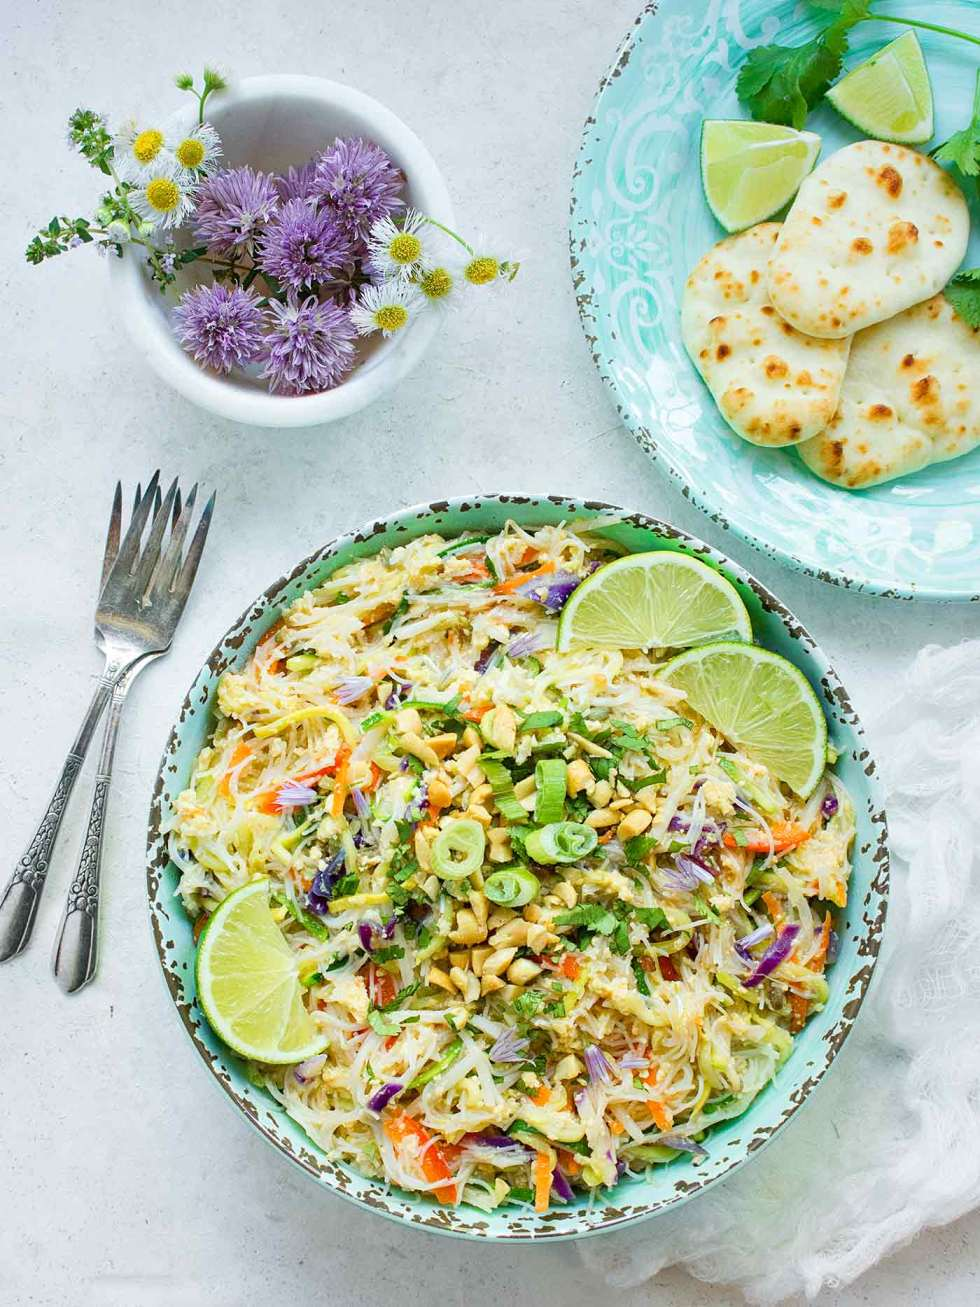 A bowl of Rainbow Pad Thai with a side of mini naans